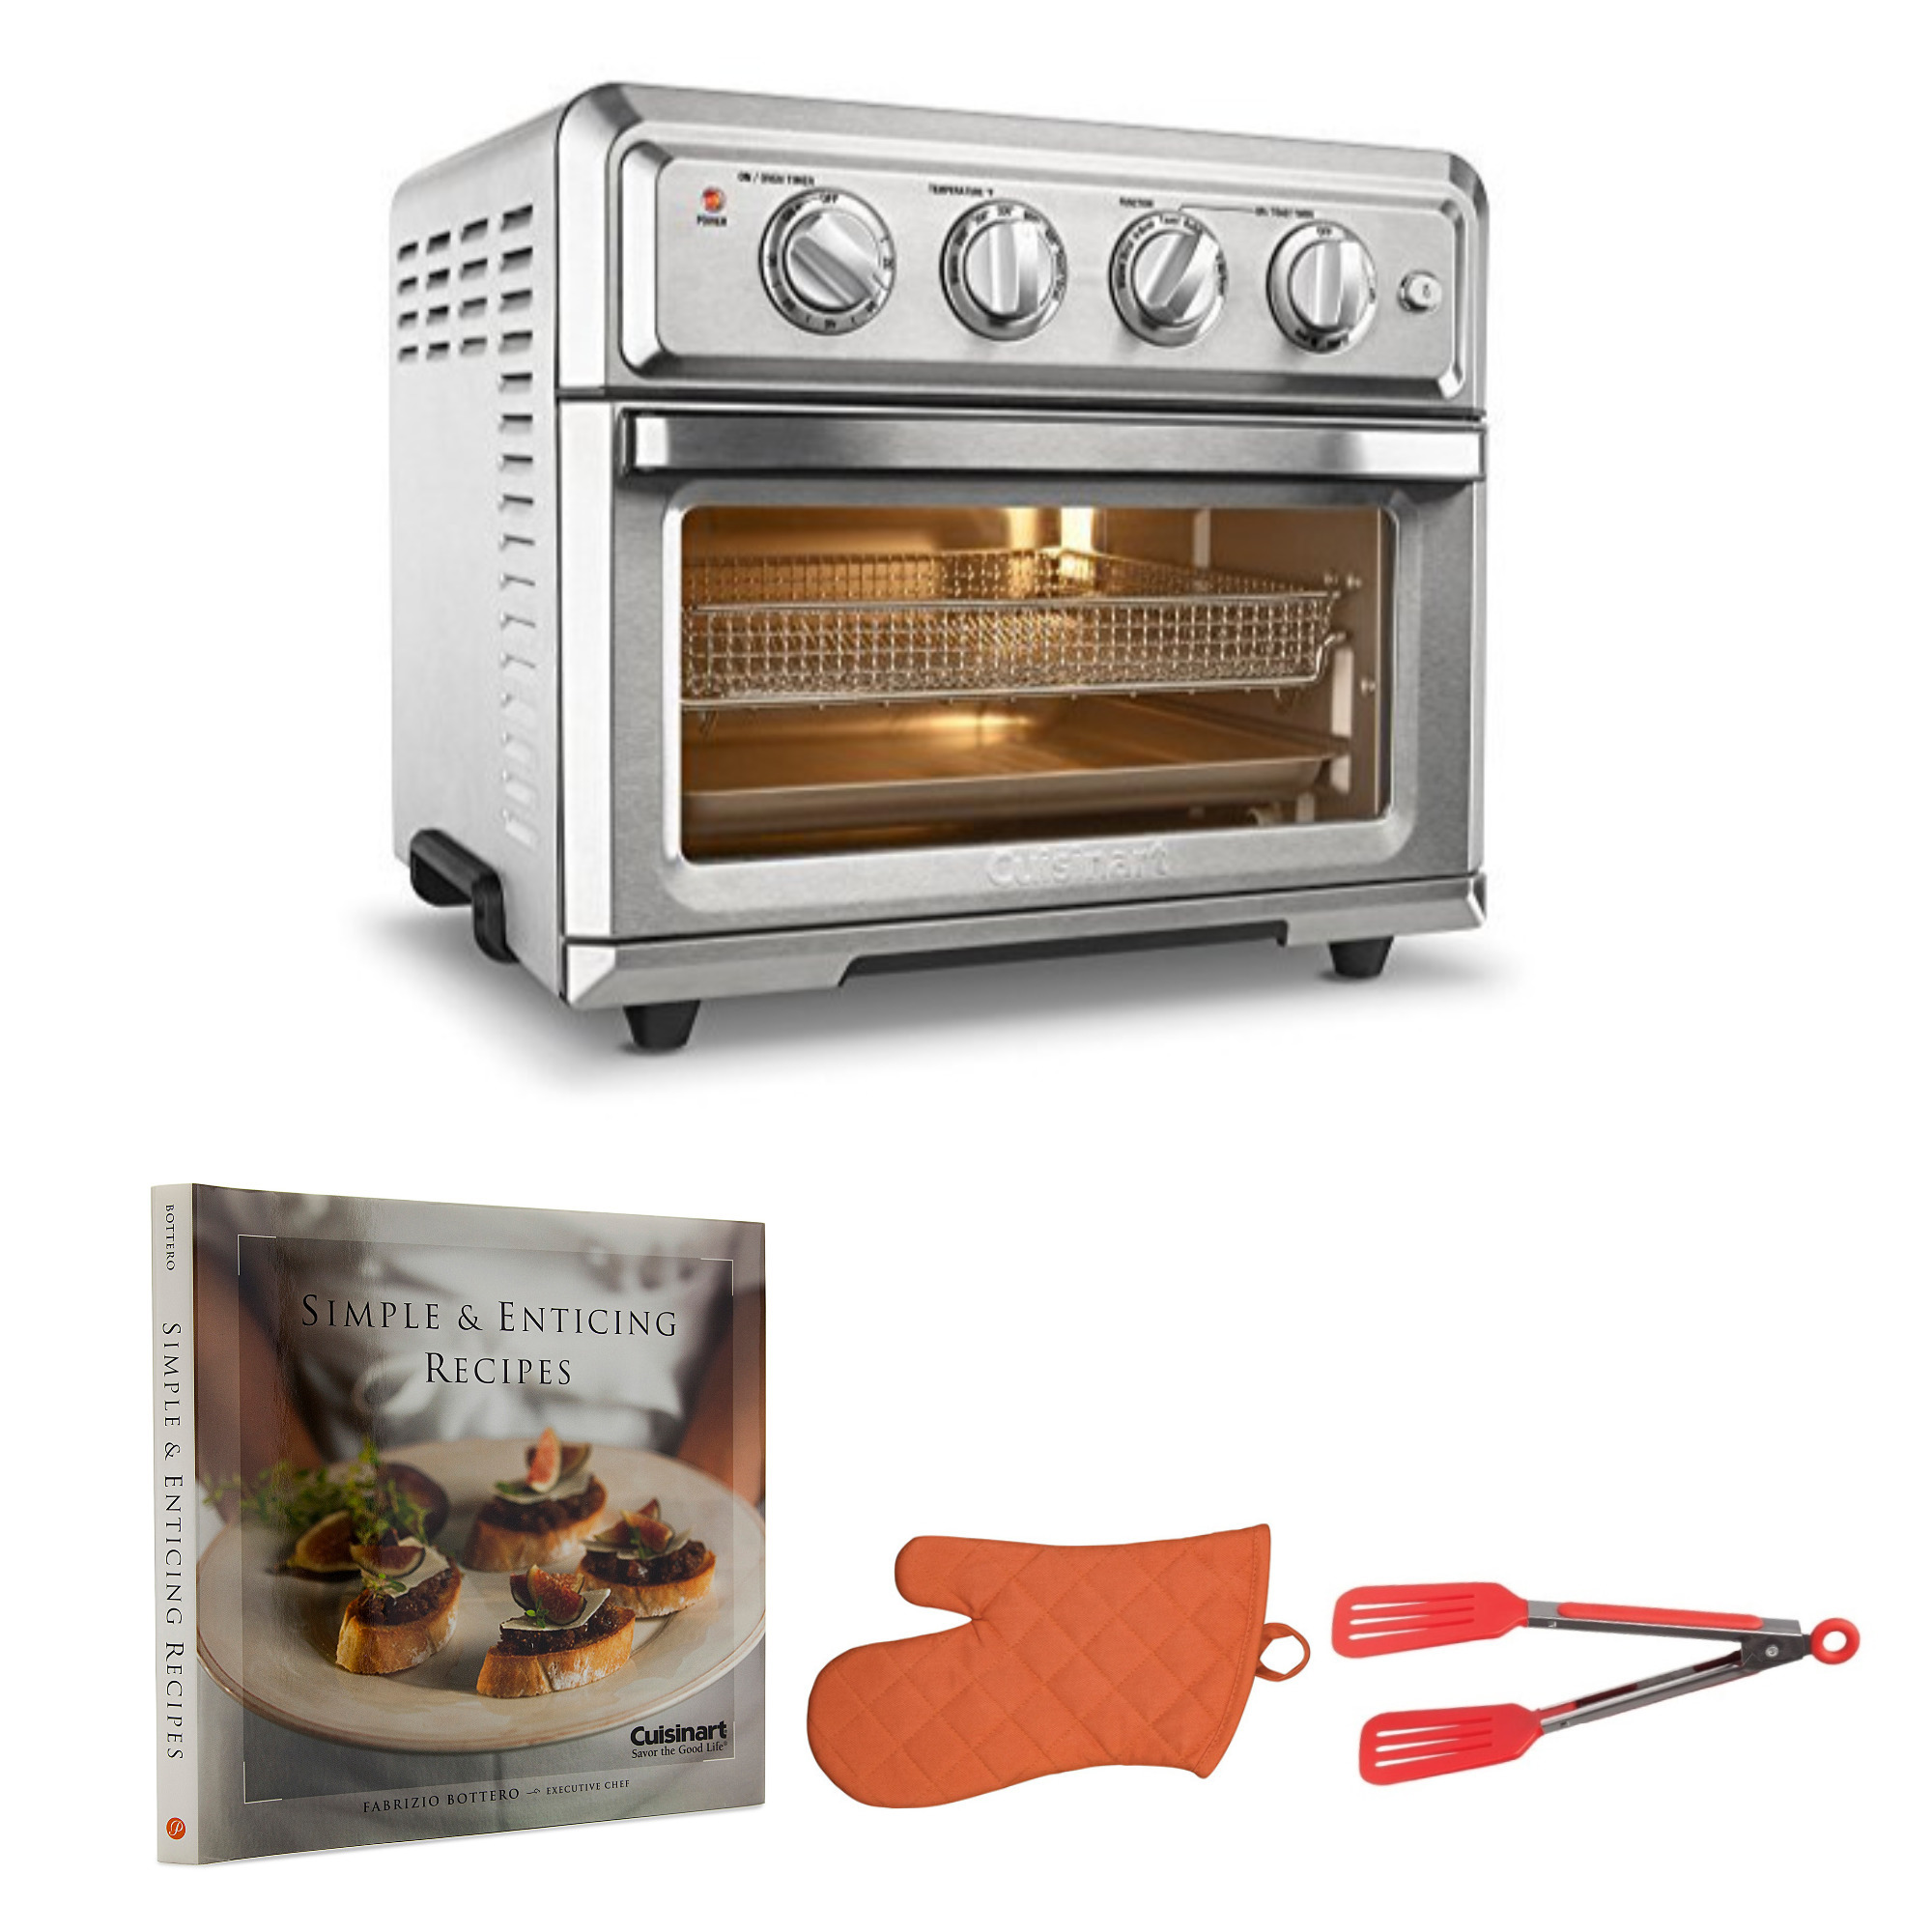 Cuisinart Air Fryer Convection Oven With Cookbook Oven